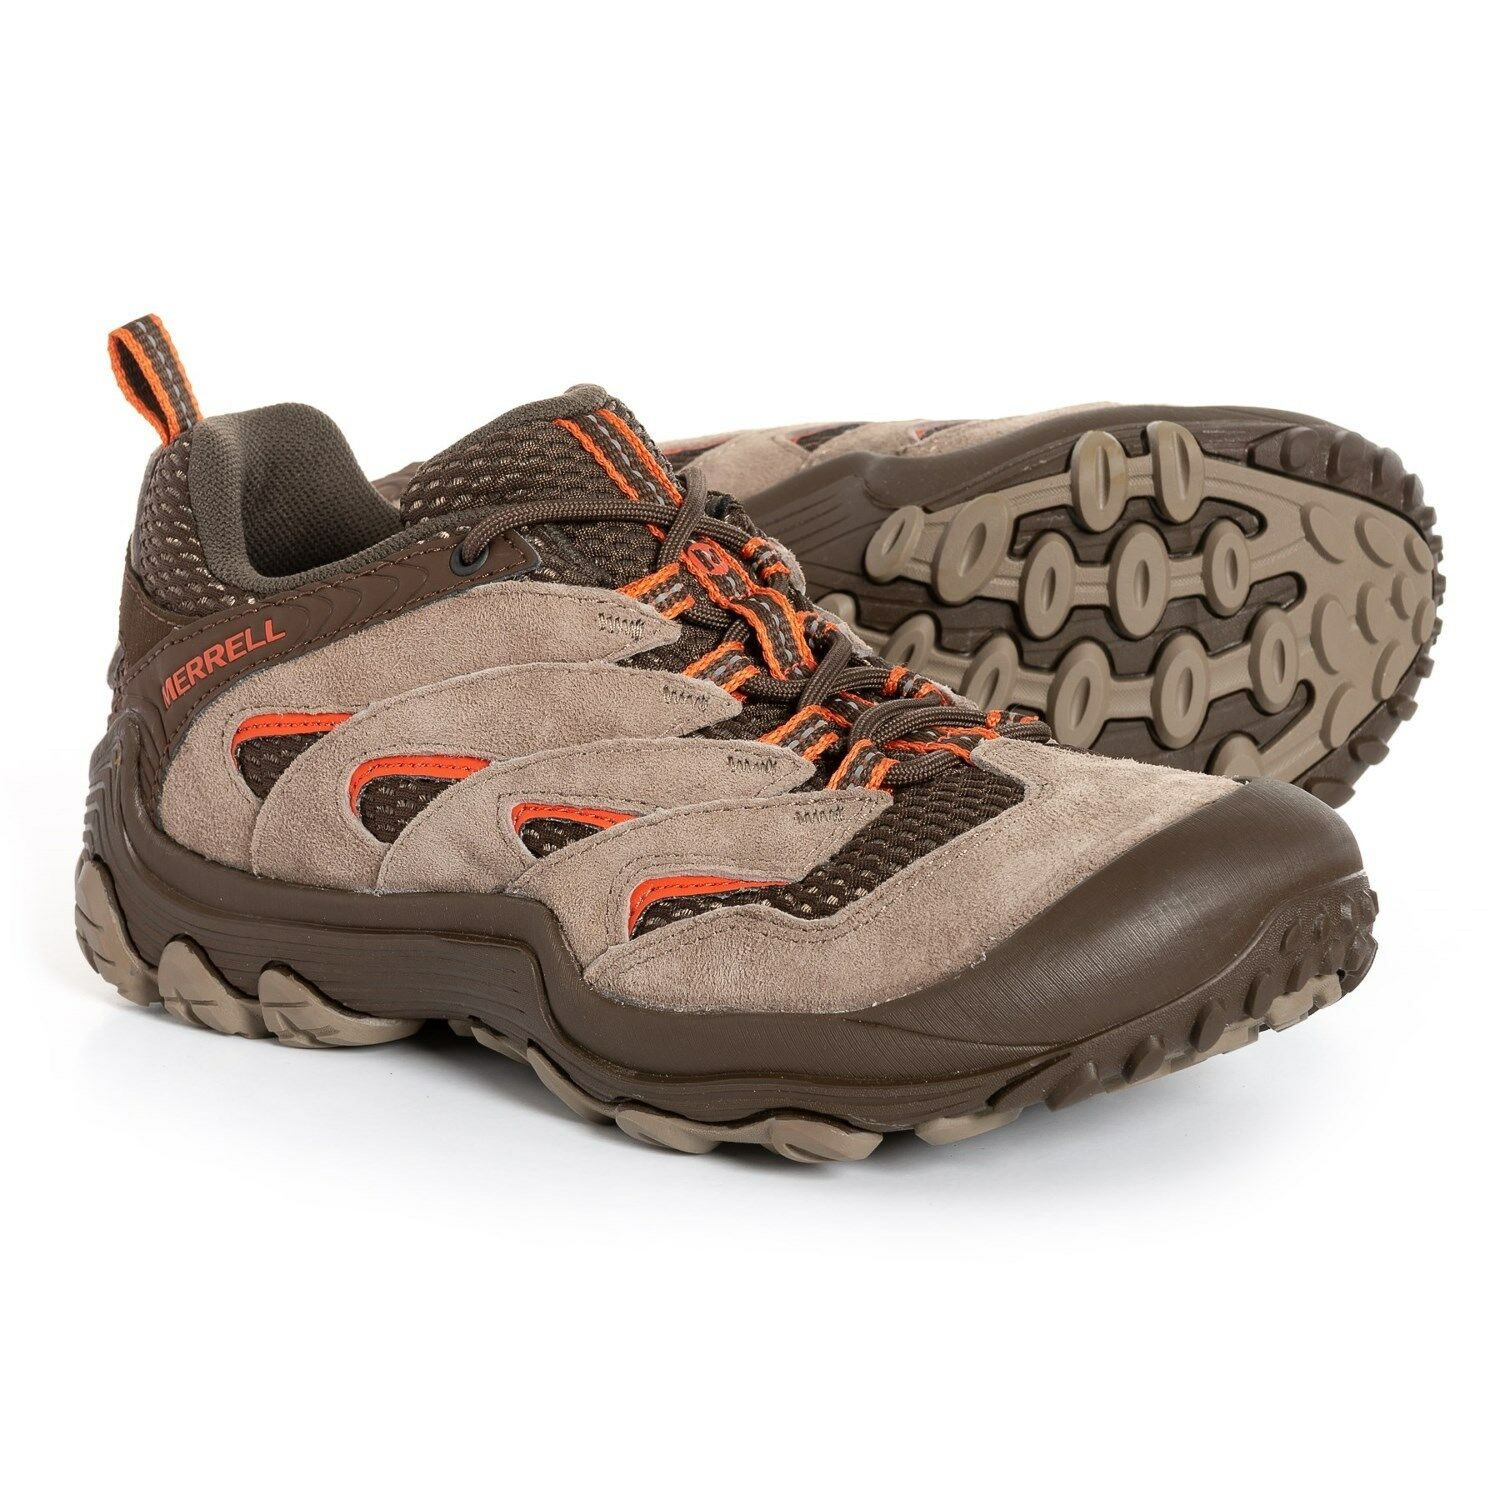 Merrell Chameleon 7 Limit Womens Hiking shoes (Size 6.5 - 11) Brindle J12780 Cham